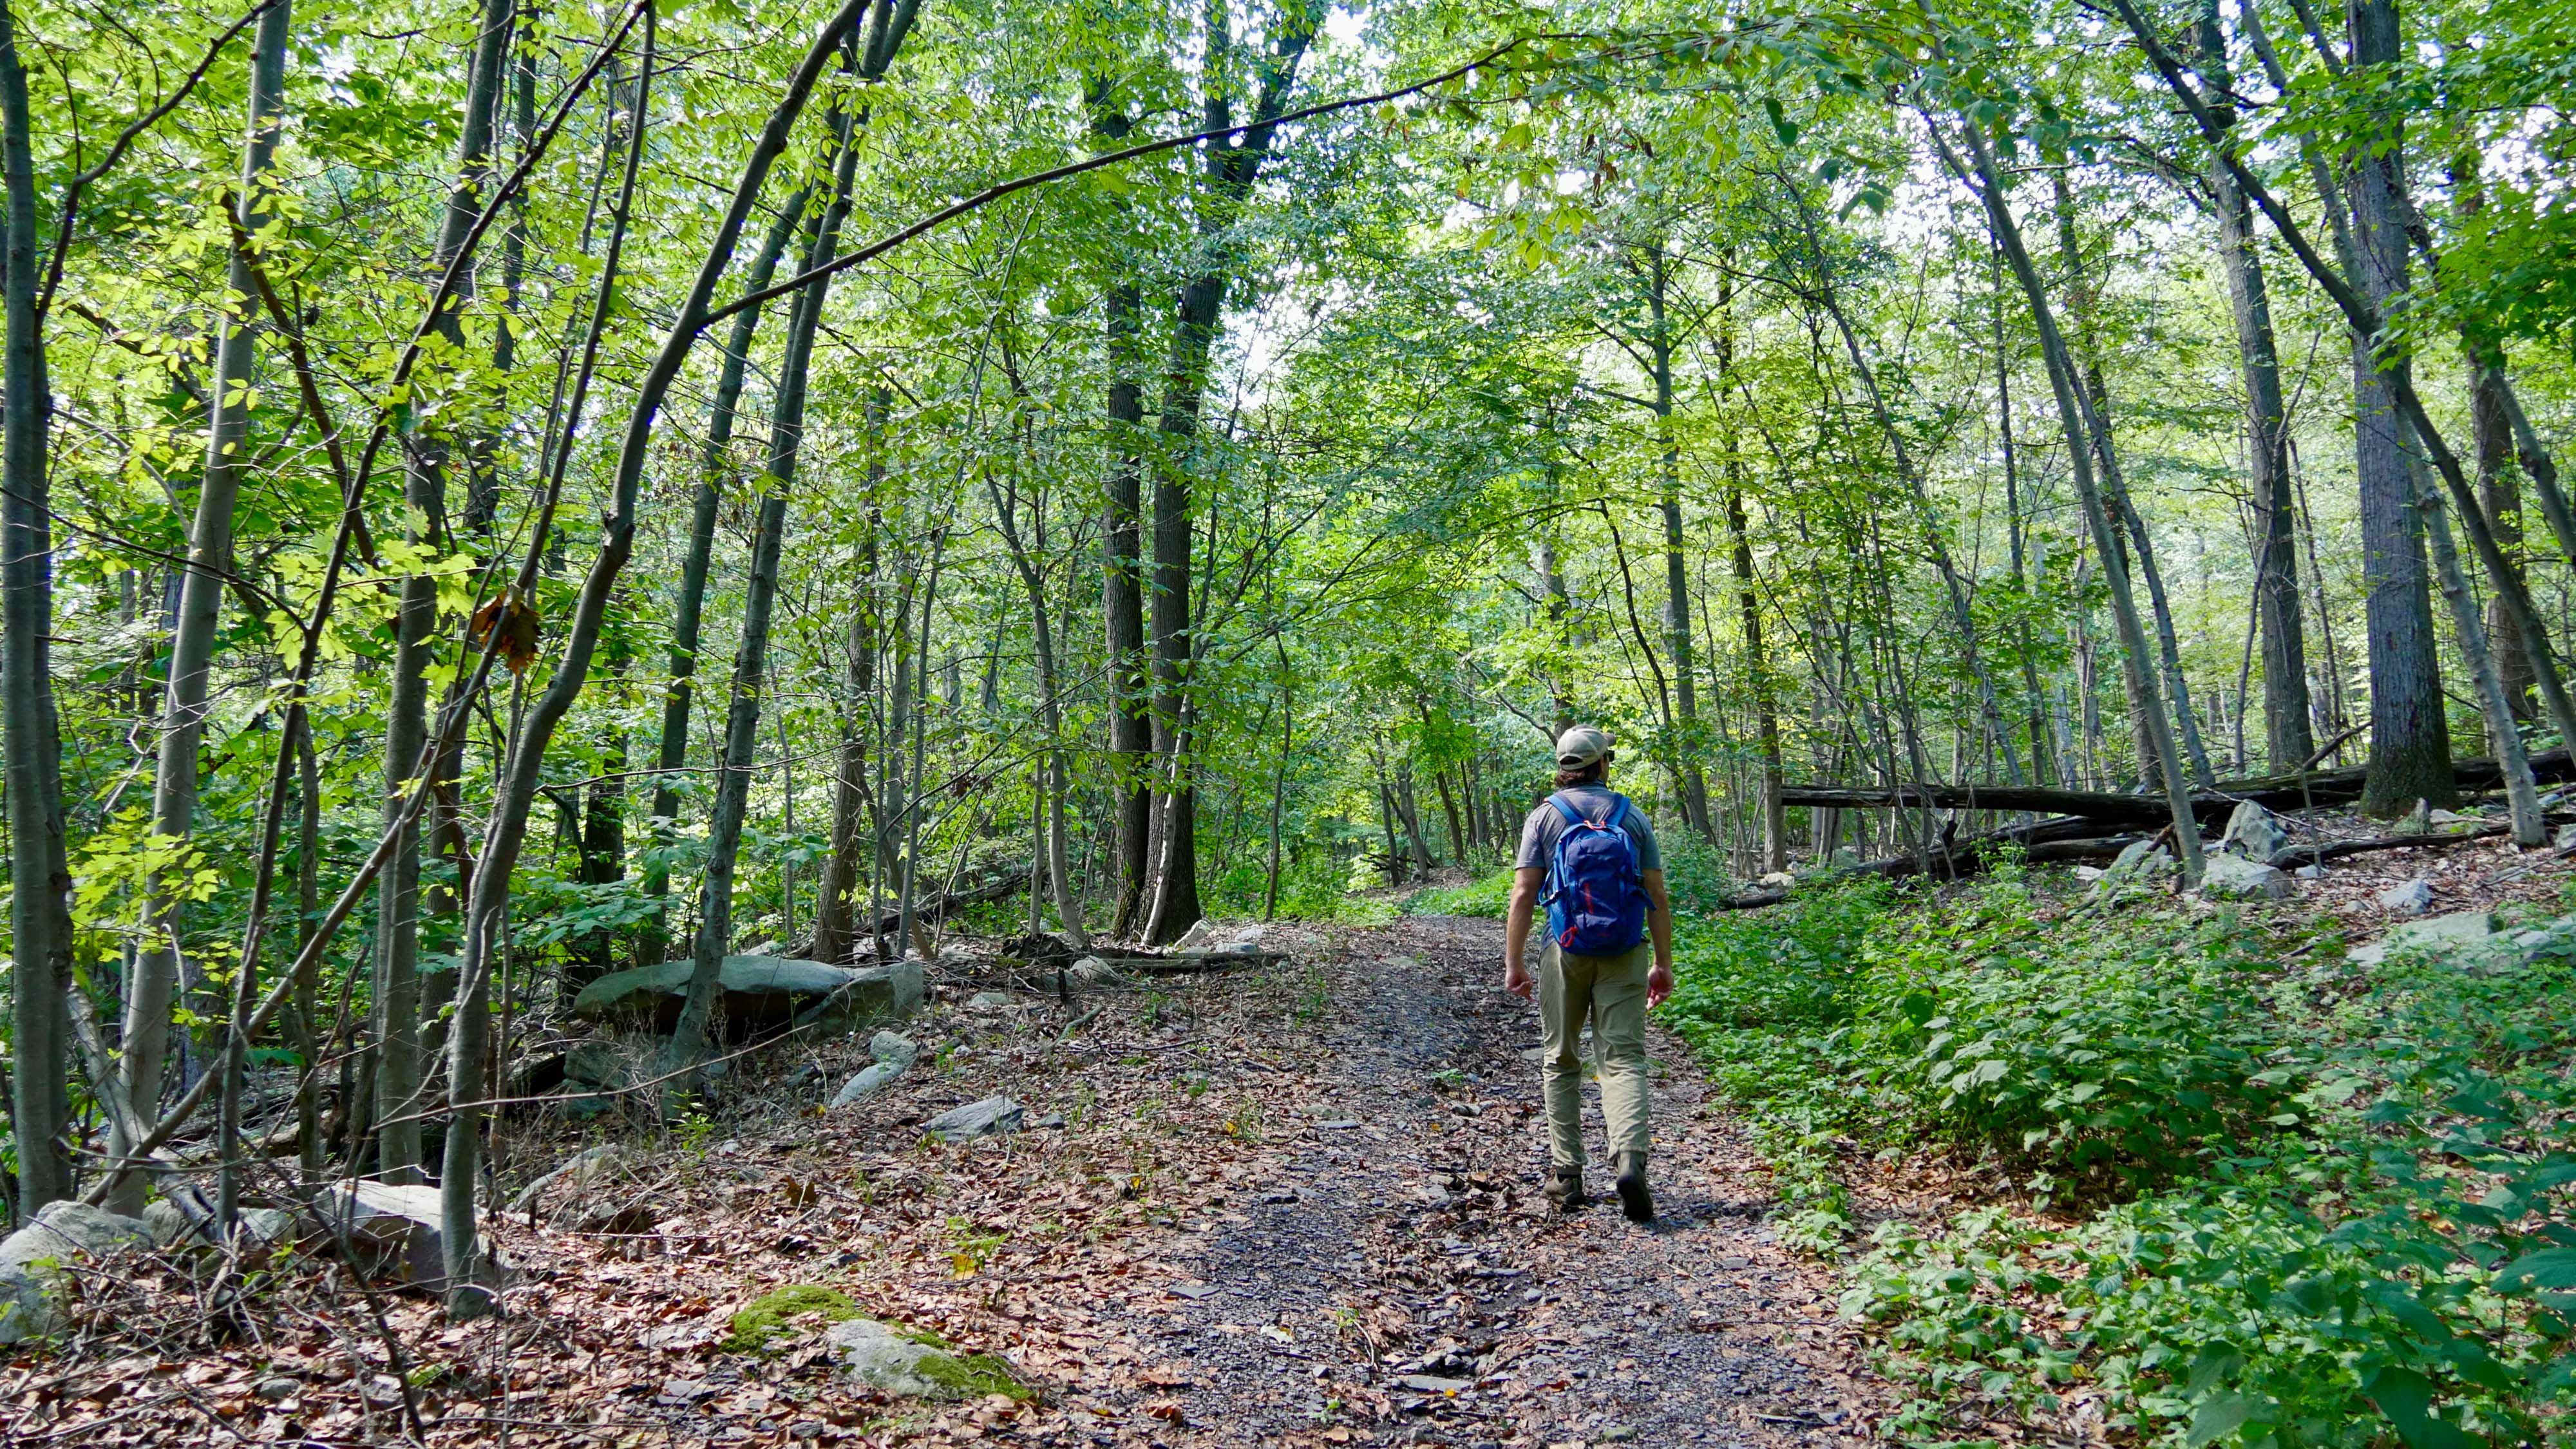 A man walks along a hiking path that stretches into a forest, cutting between tall, slender trees that bend over the trail forming a shaded canopy.